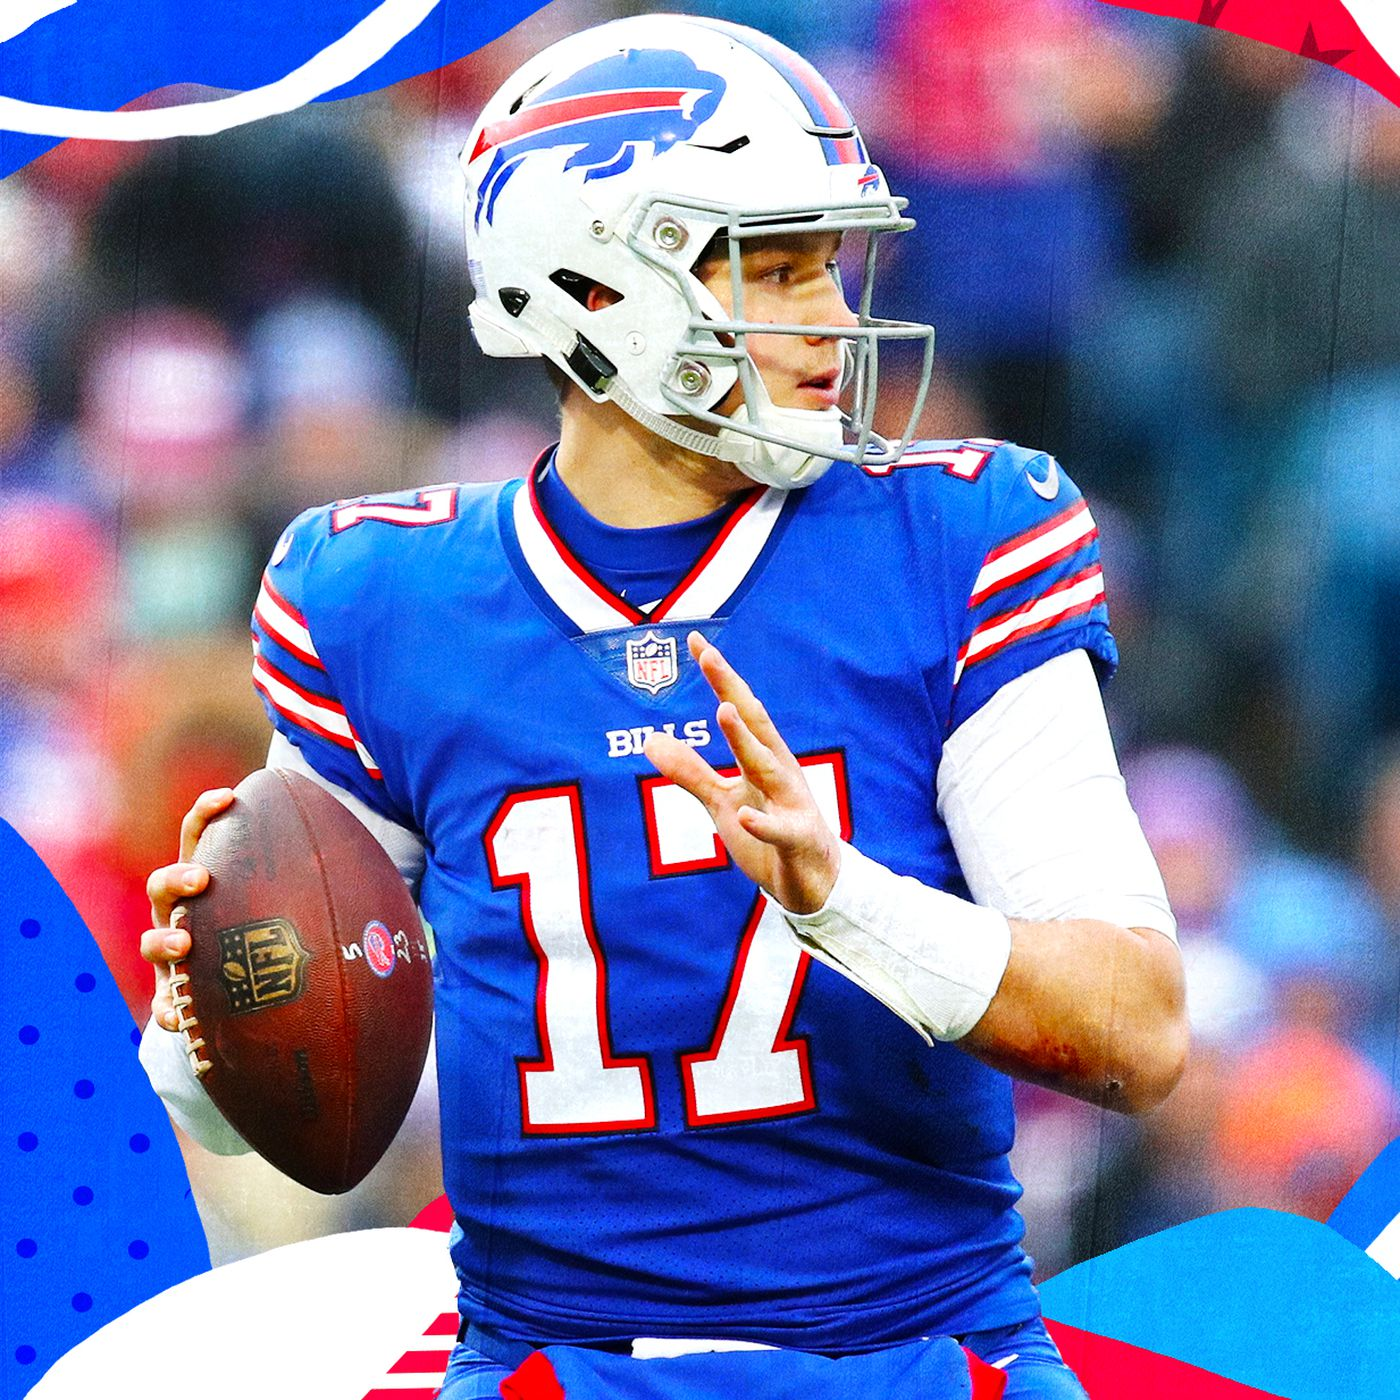 finest selection 6bac7 ac8e5 The Bills' 2019 season is about letting Josh Allen prove ...